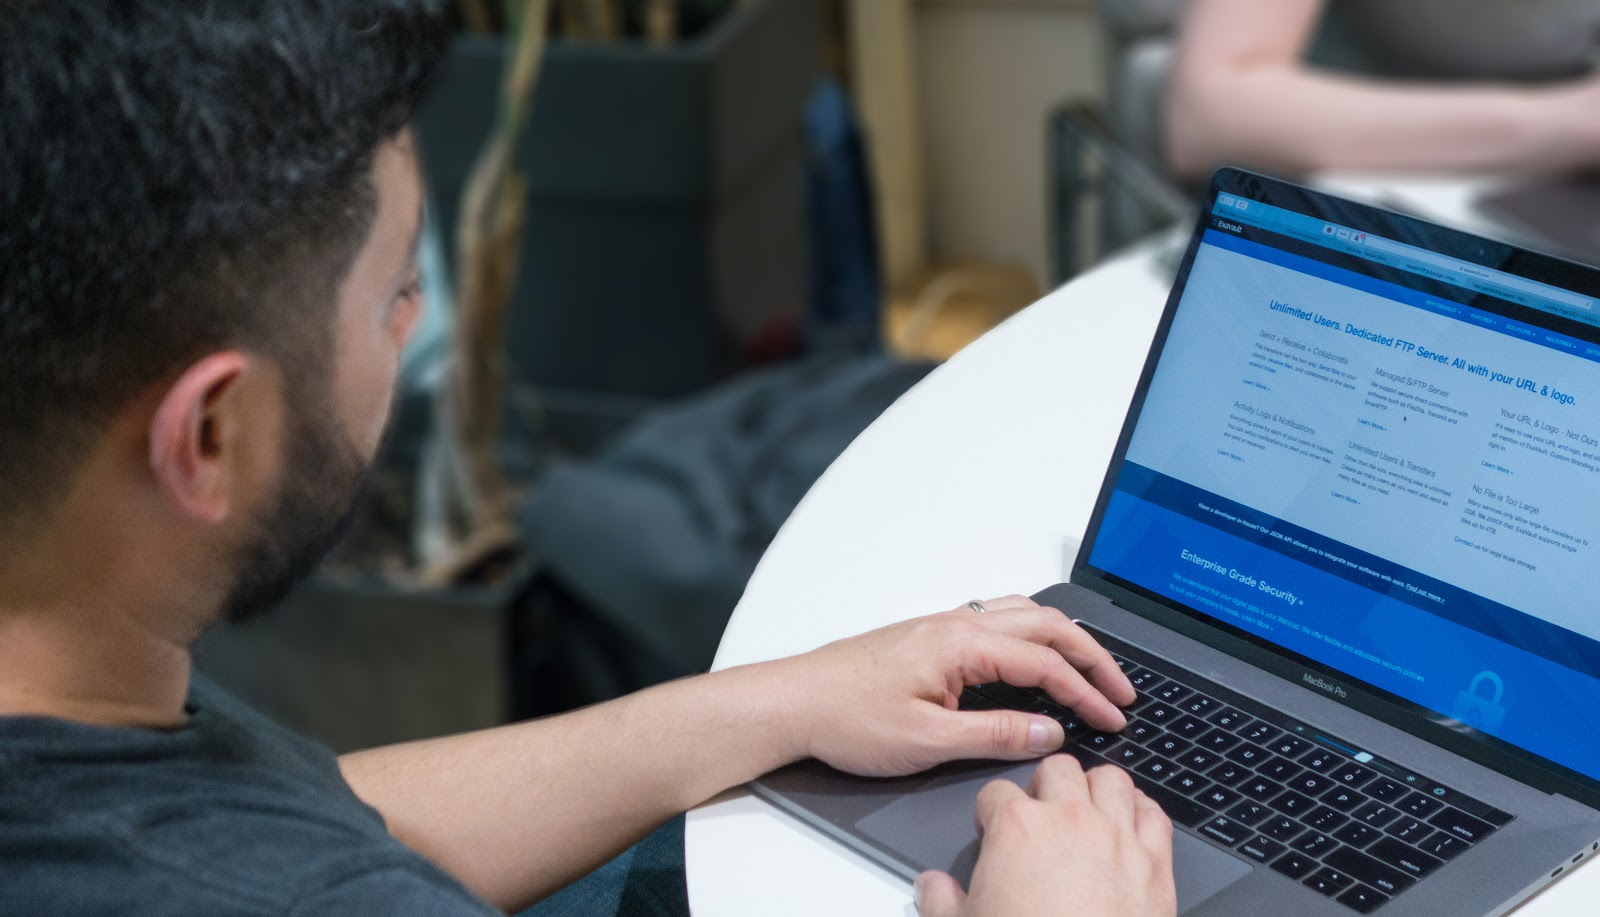 Person reviewing ExaVault features on their laptop.